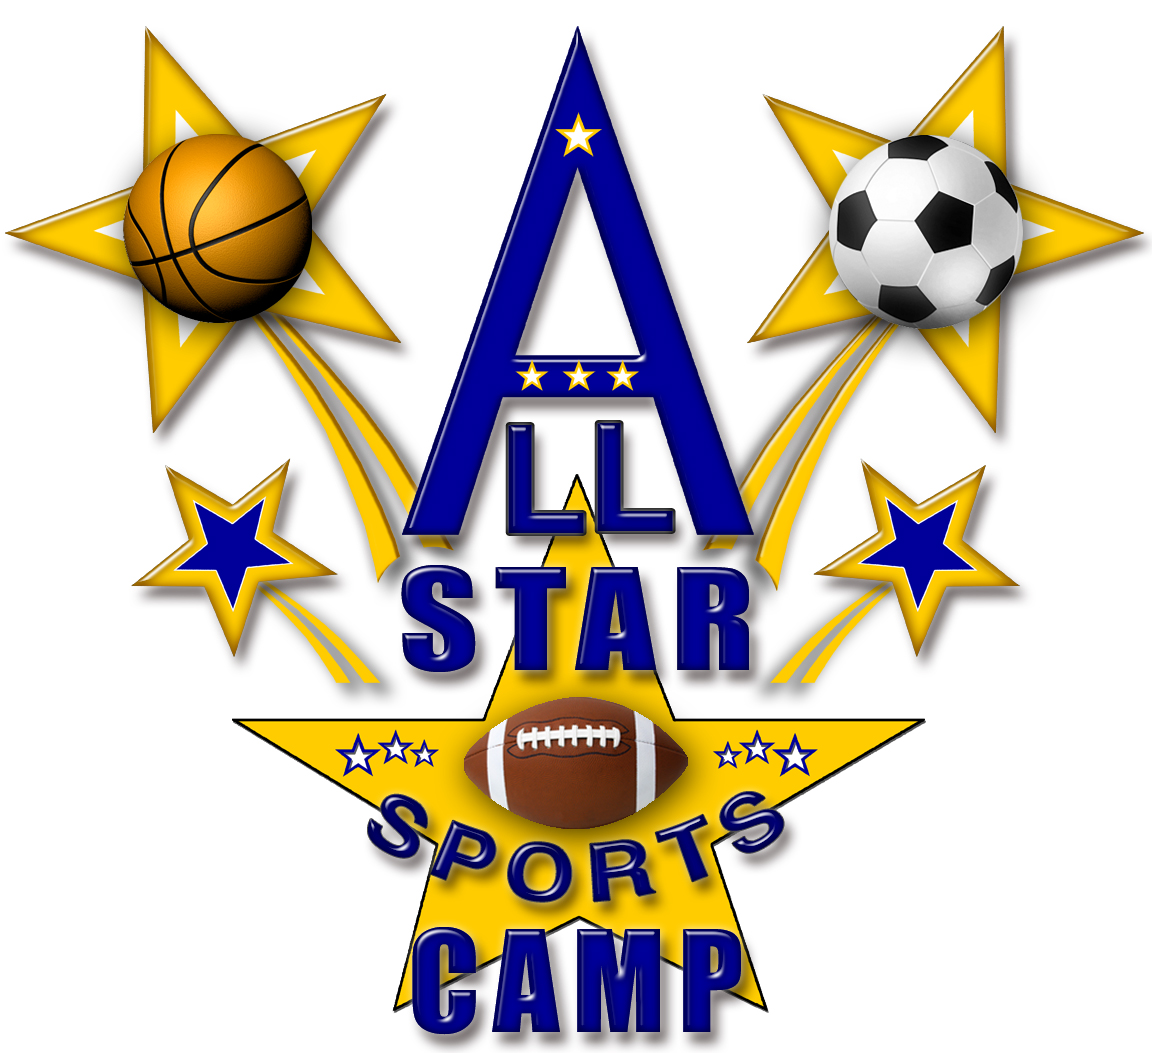 All-Star Sports Camp logo